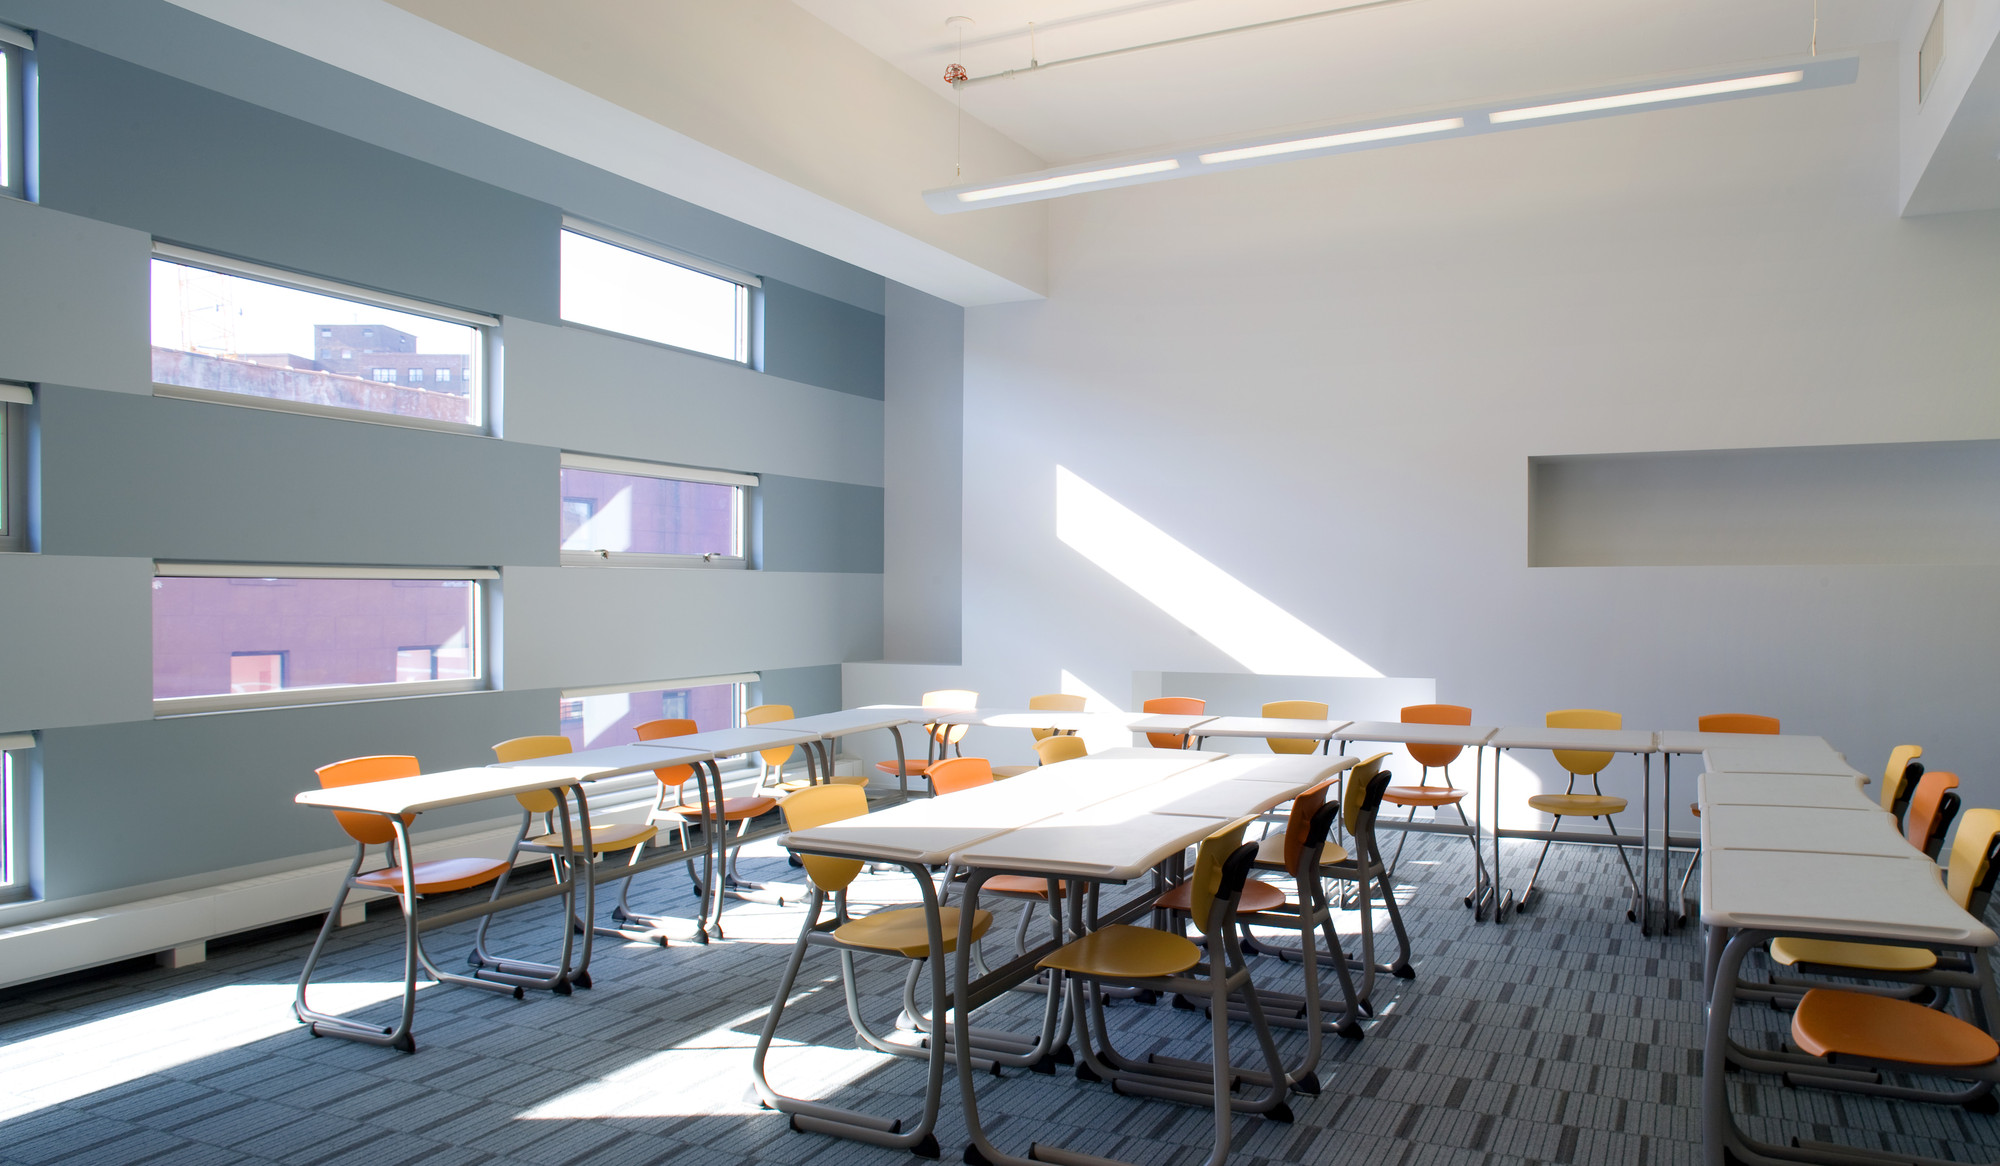 Gallery of the east harlem school gluck 8 for Interior architecture programs online